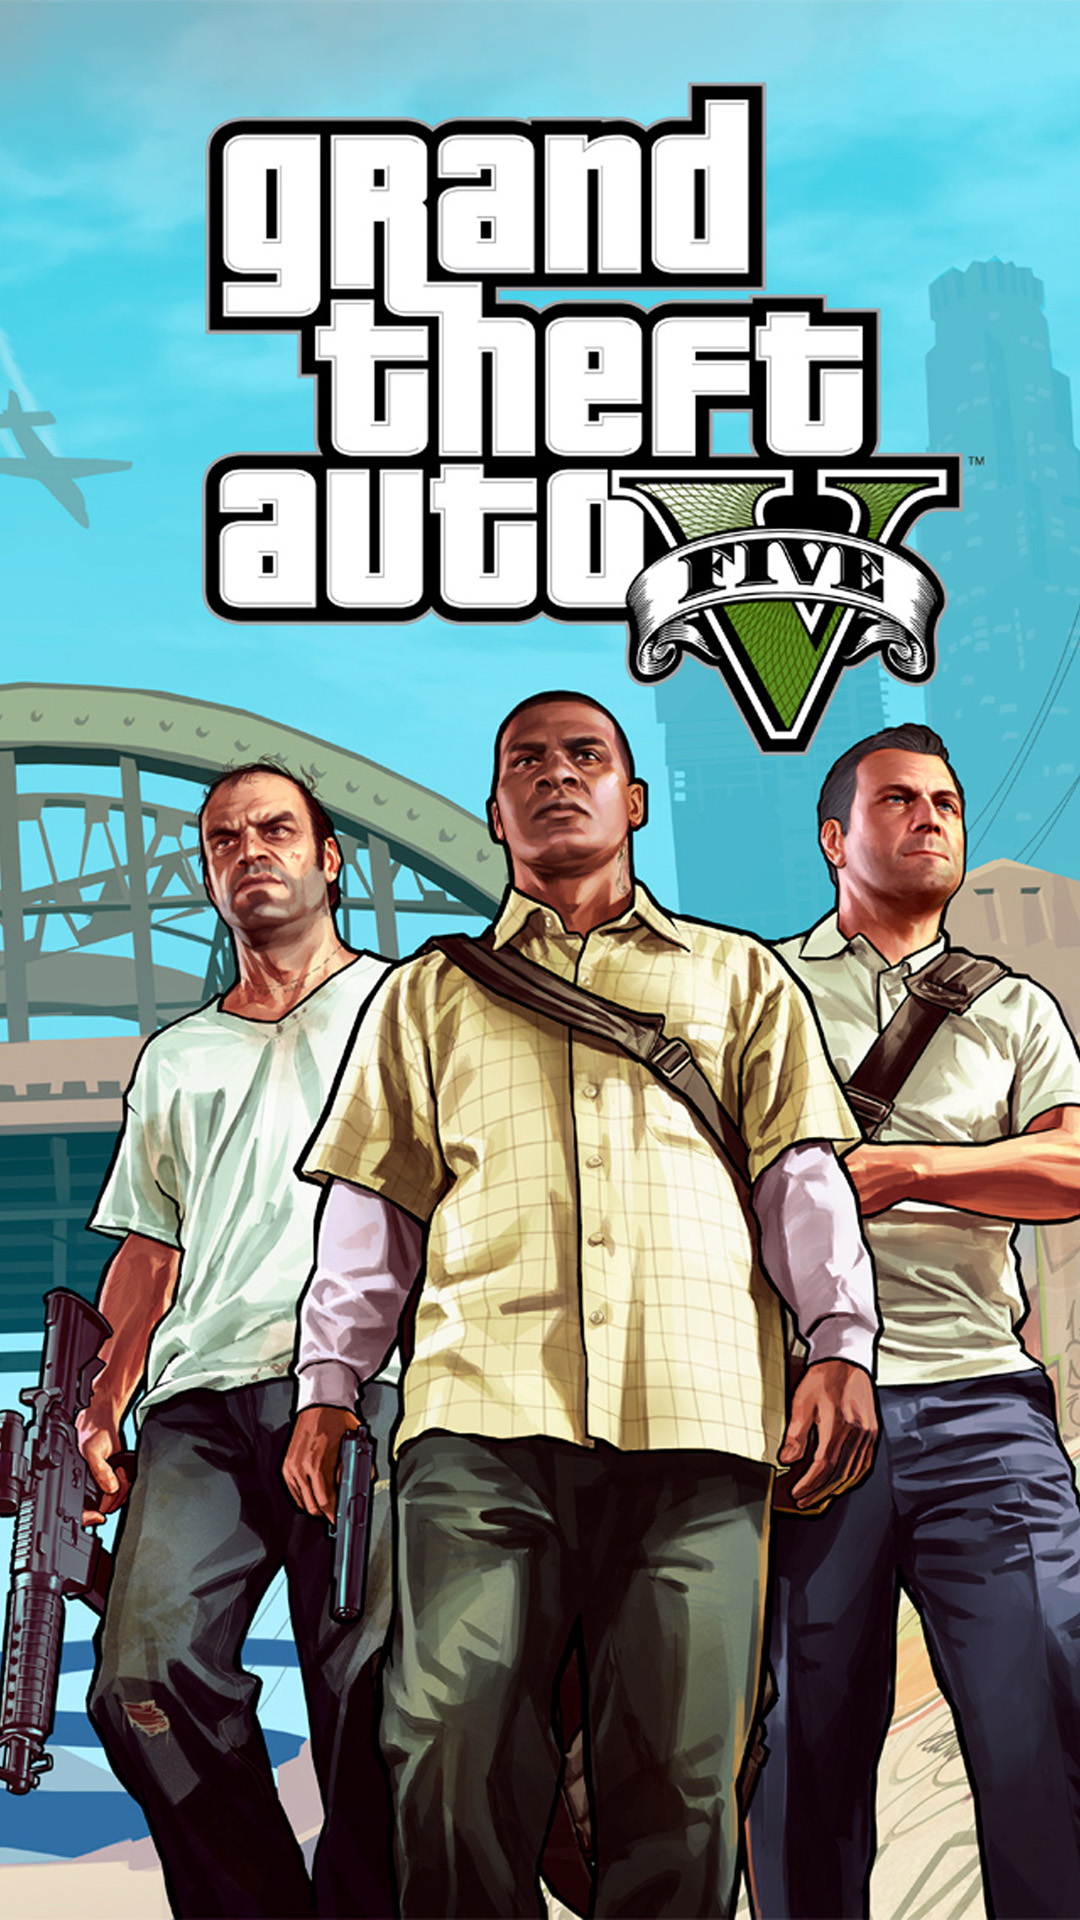 Gta 5 Wallpaper Android